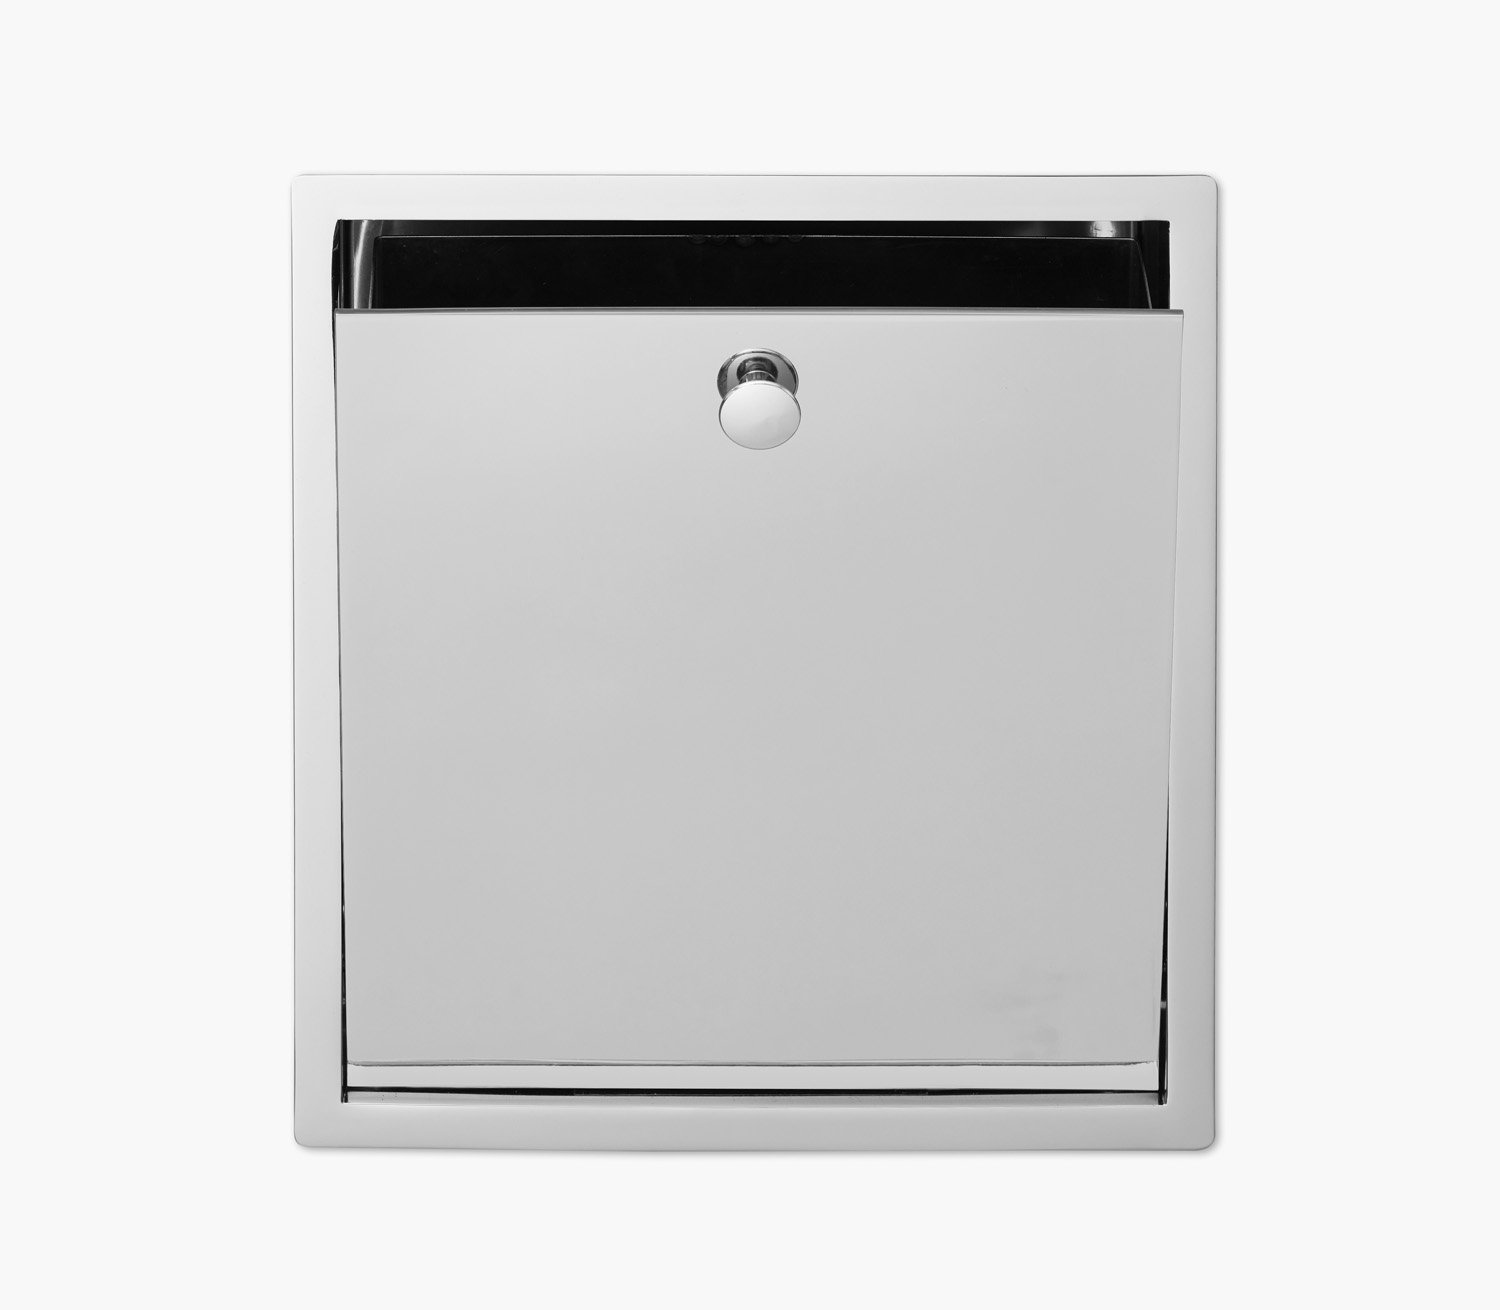 Wall Recessed Waste Bin Product Image 4